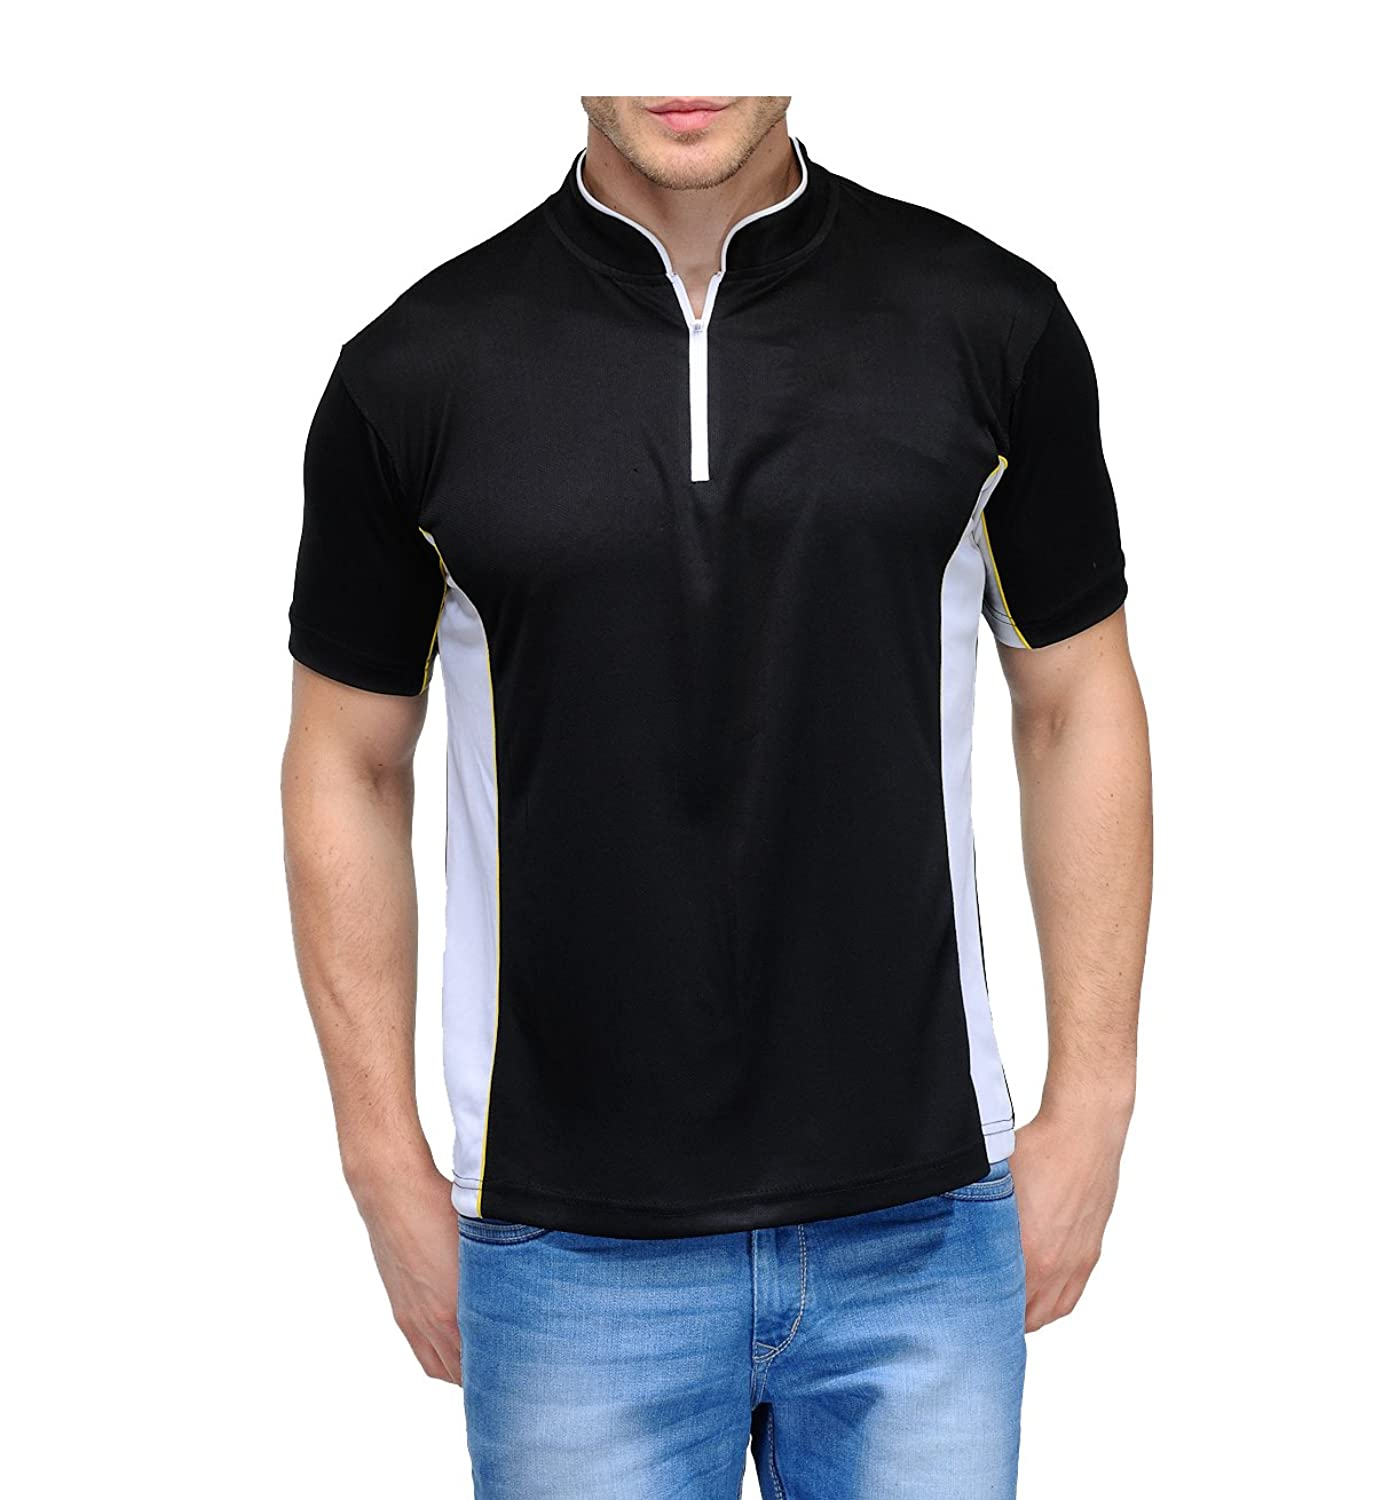 Black t shirt collar - Scott Men S Jersey Collar Neck Sports Dryfit T Shirt Black Amazon In Clothing Accessories